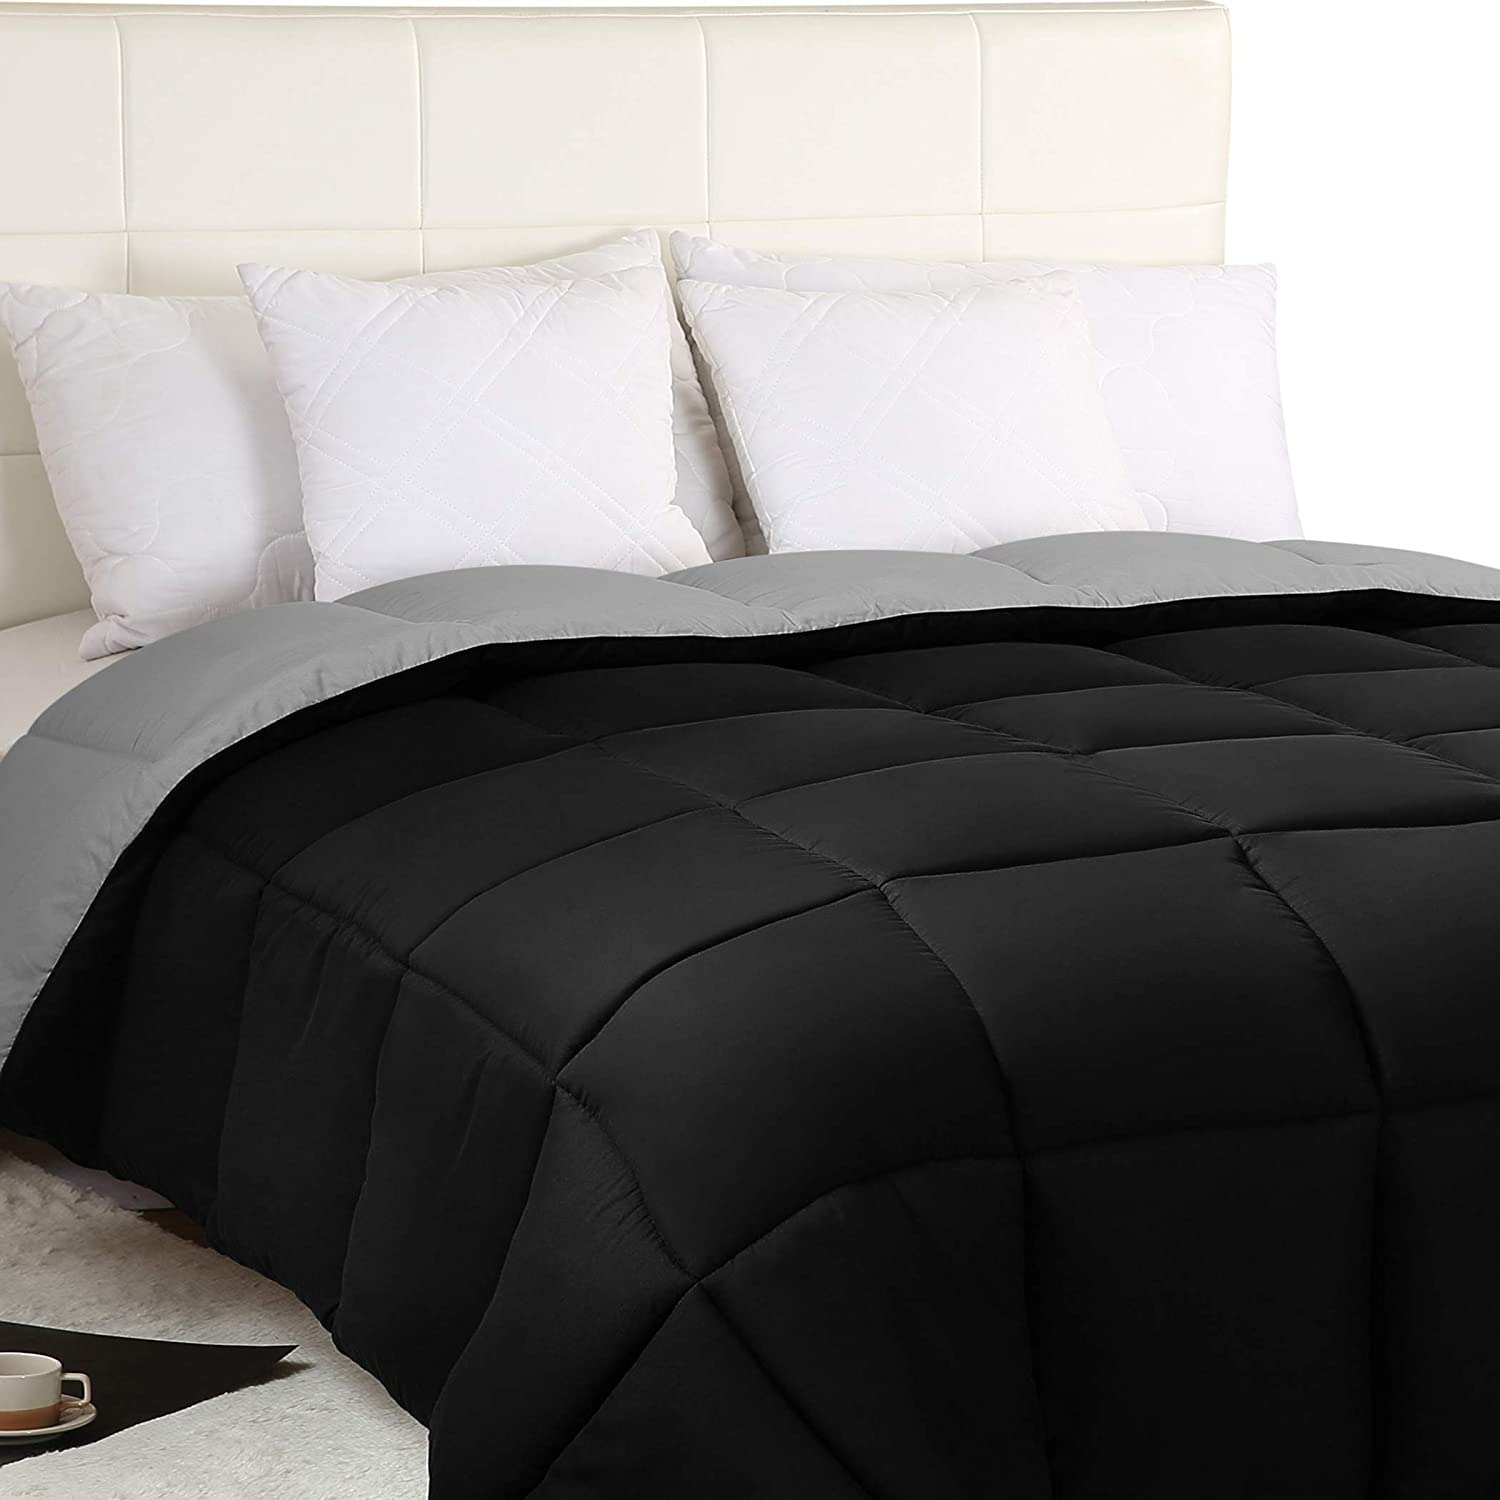 Amazon Com Utopia Bedding Down Alternative Reversible Comforter All Season Duvet Insert Microfiber Box Stitched 3d Hollow Siliconized Comforter Twin Black Grey Home Kitchen